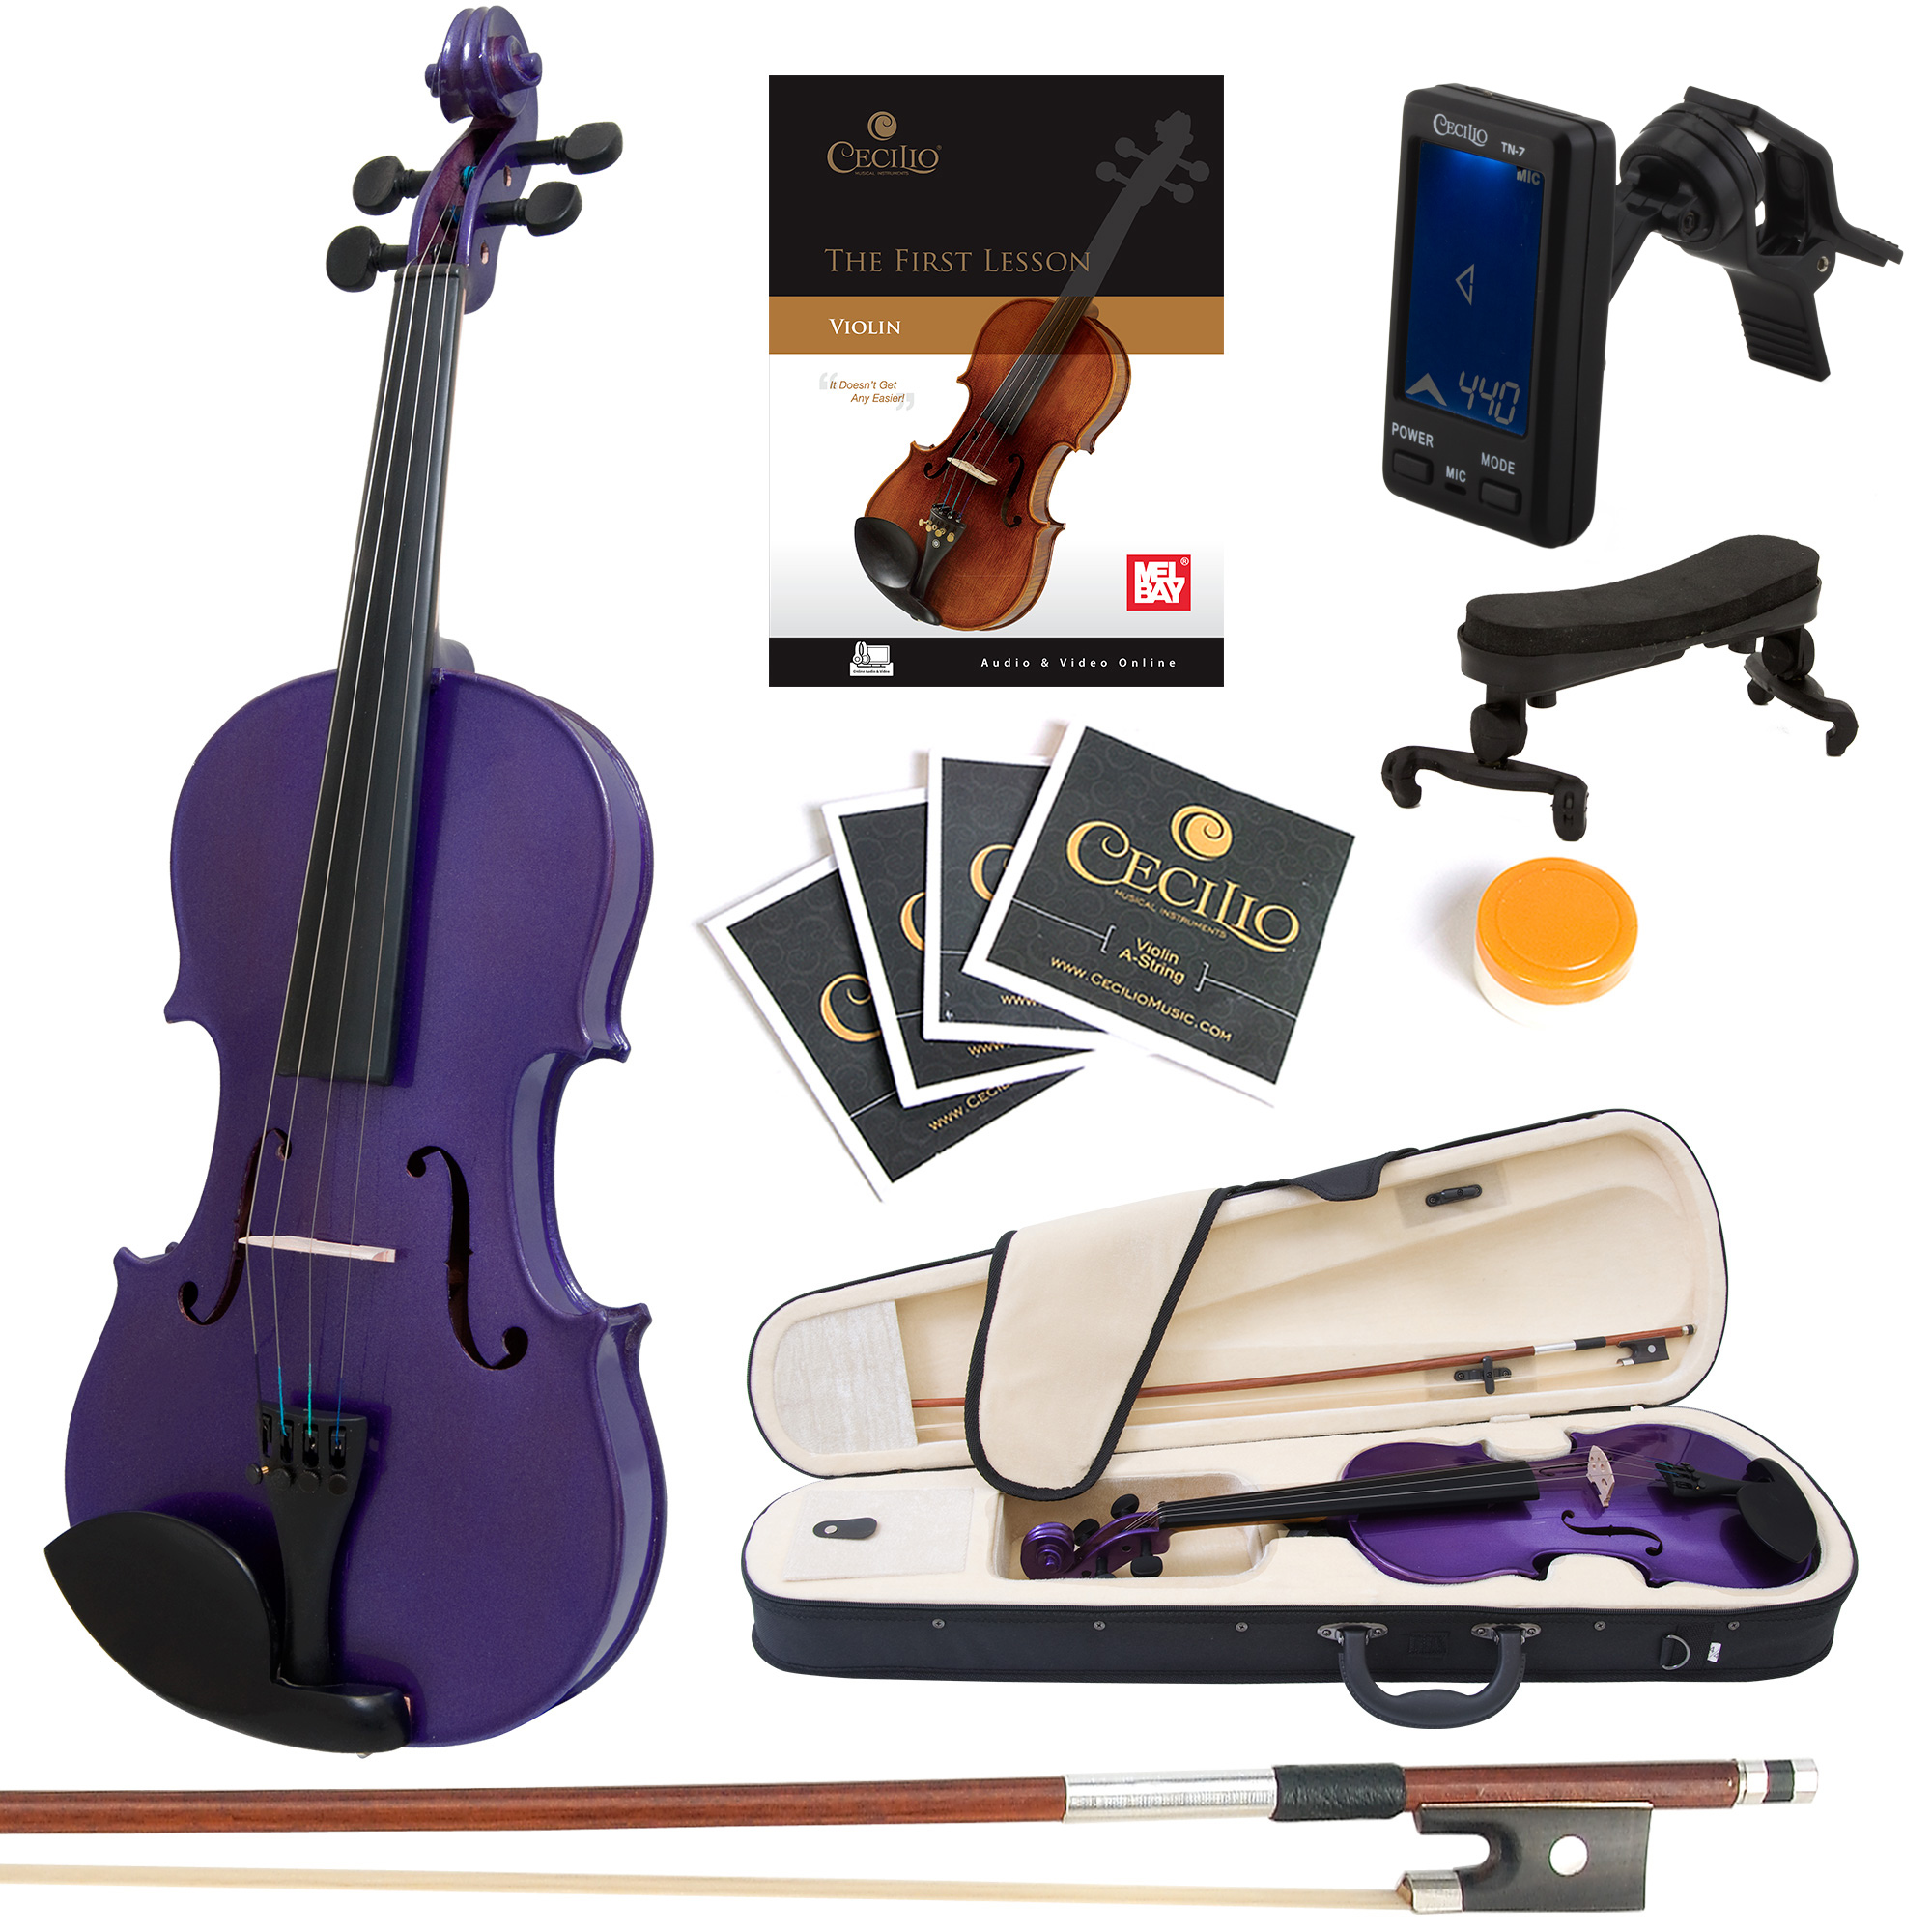 Mendini Full Size 4/4 MV-Purple Solid Wood Violin w/Tuner, Lesson Book, Shoulder Rest, Extra Strings, Bow, 2 Bridges & Case, Metallic Purple